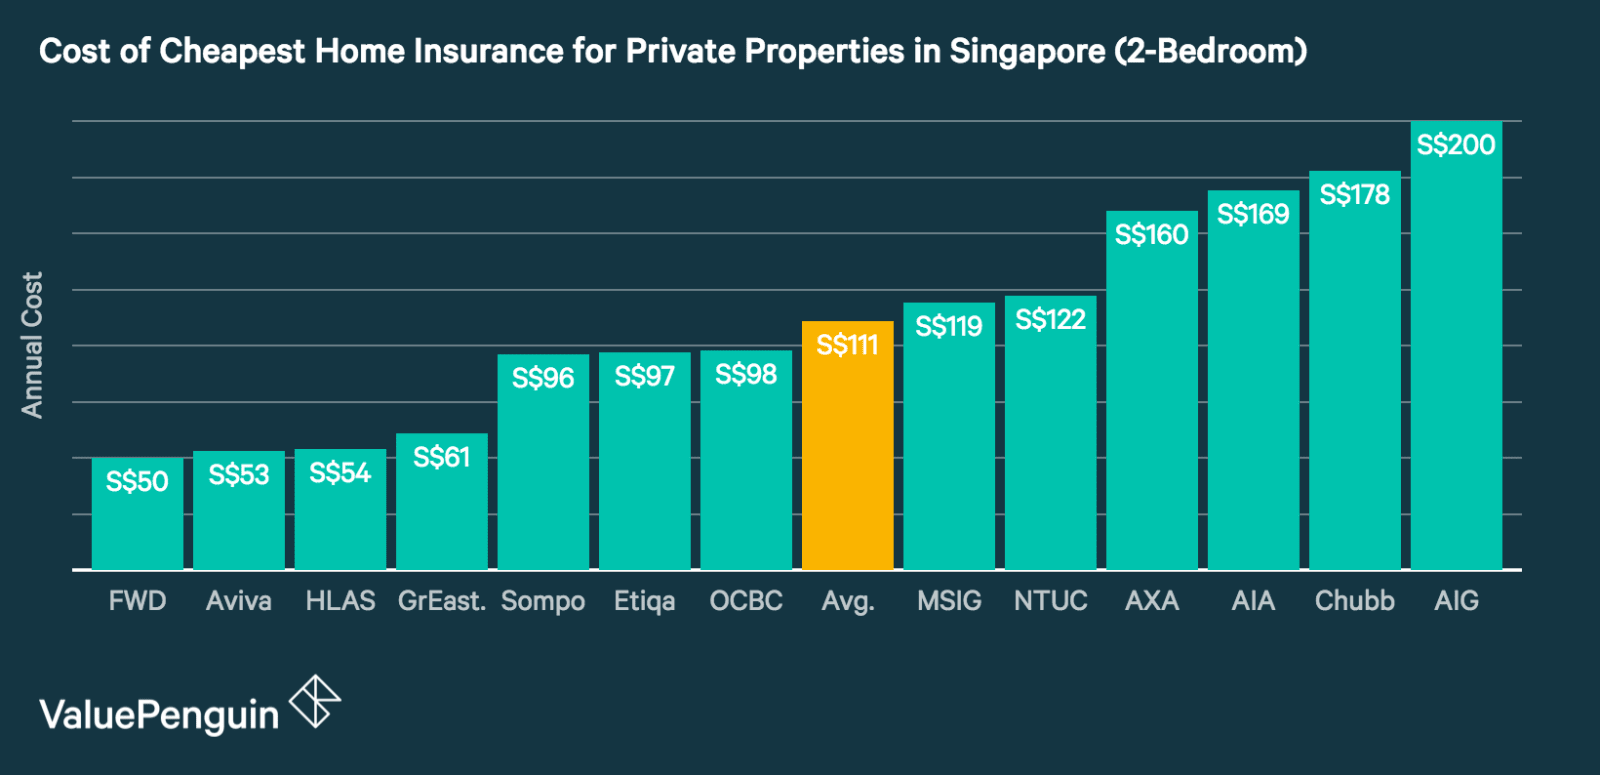 this graph compares the average cost of home insurance in Singapore for private condos equivalent to a 3-room HDB flat from major insurance companies